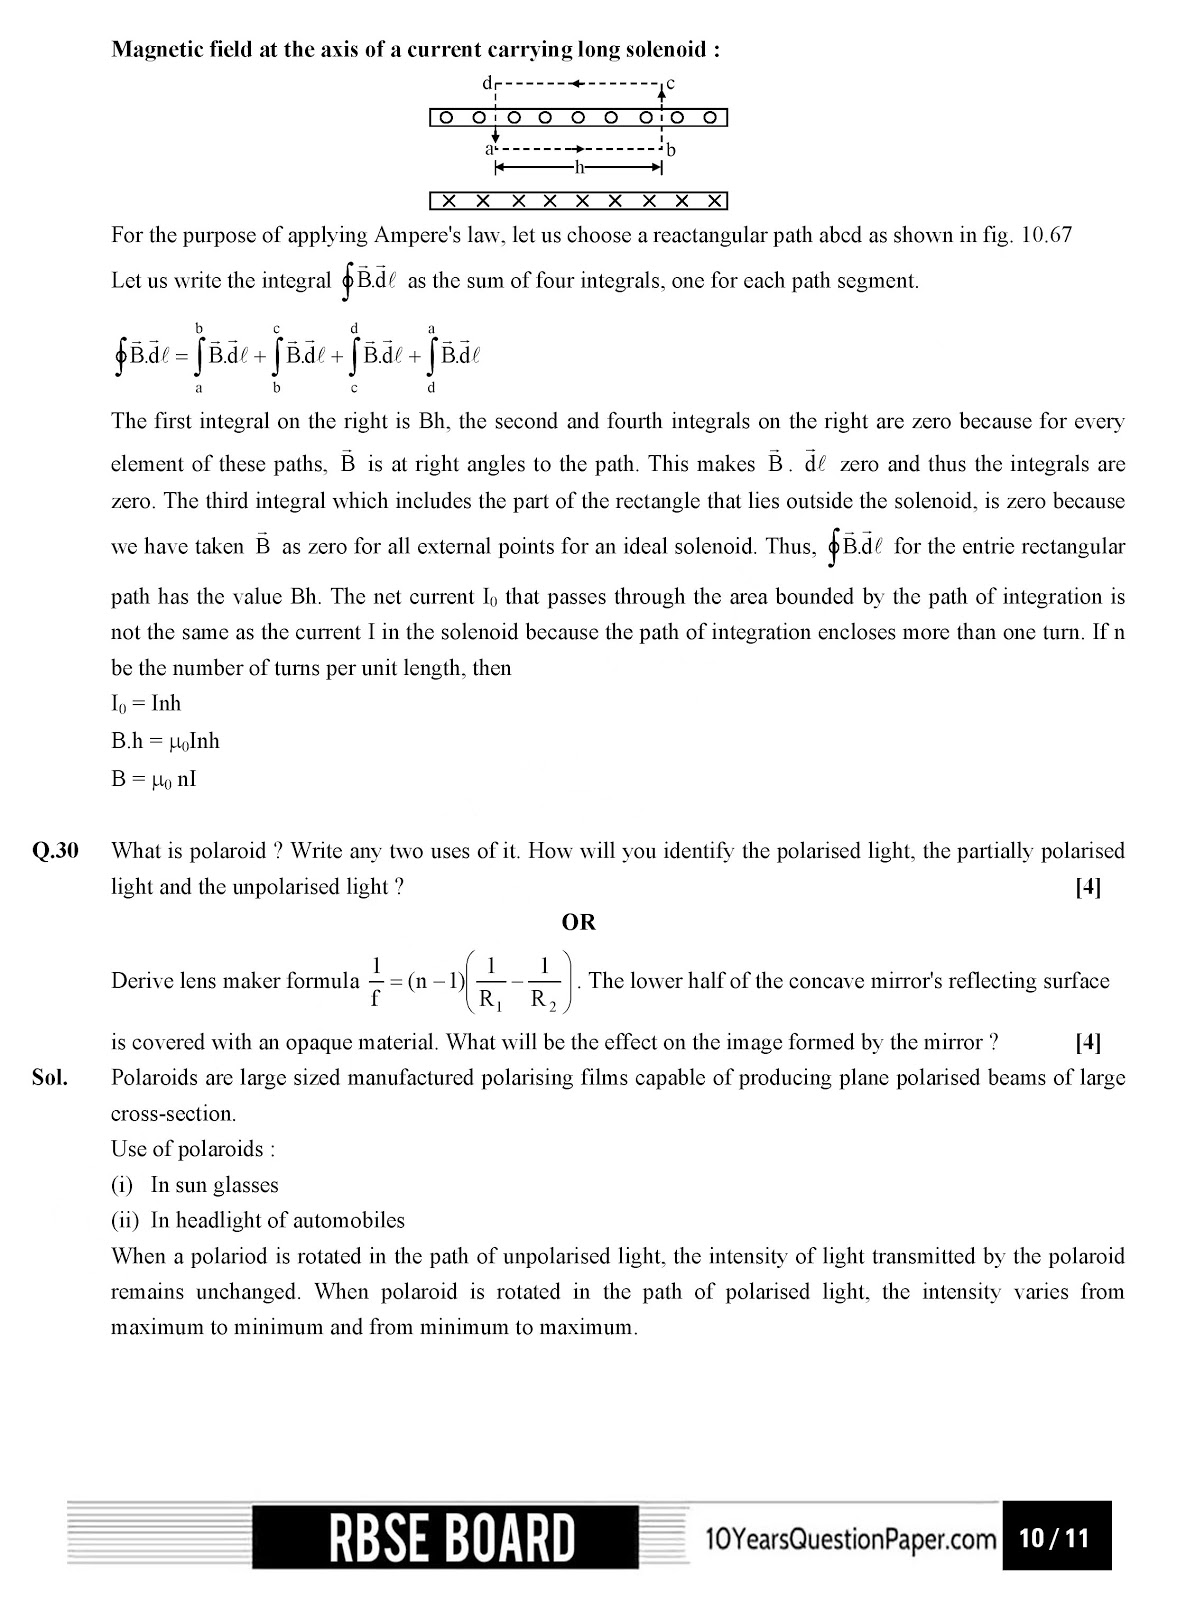 RBSE class 12th 2017 Physics question paper with solution